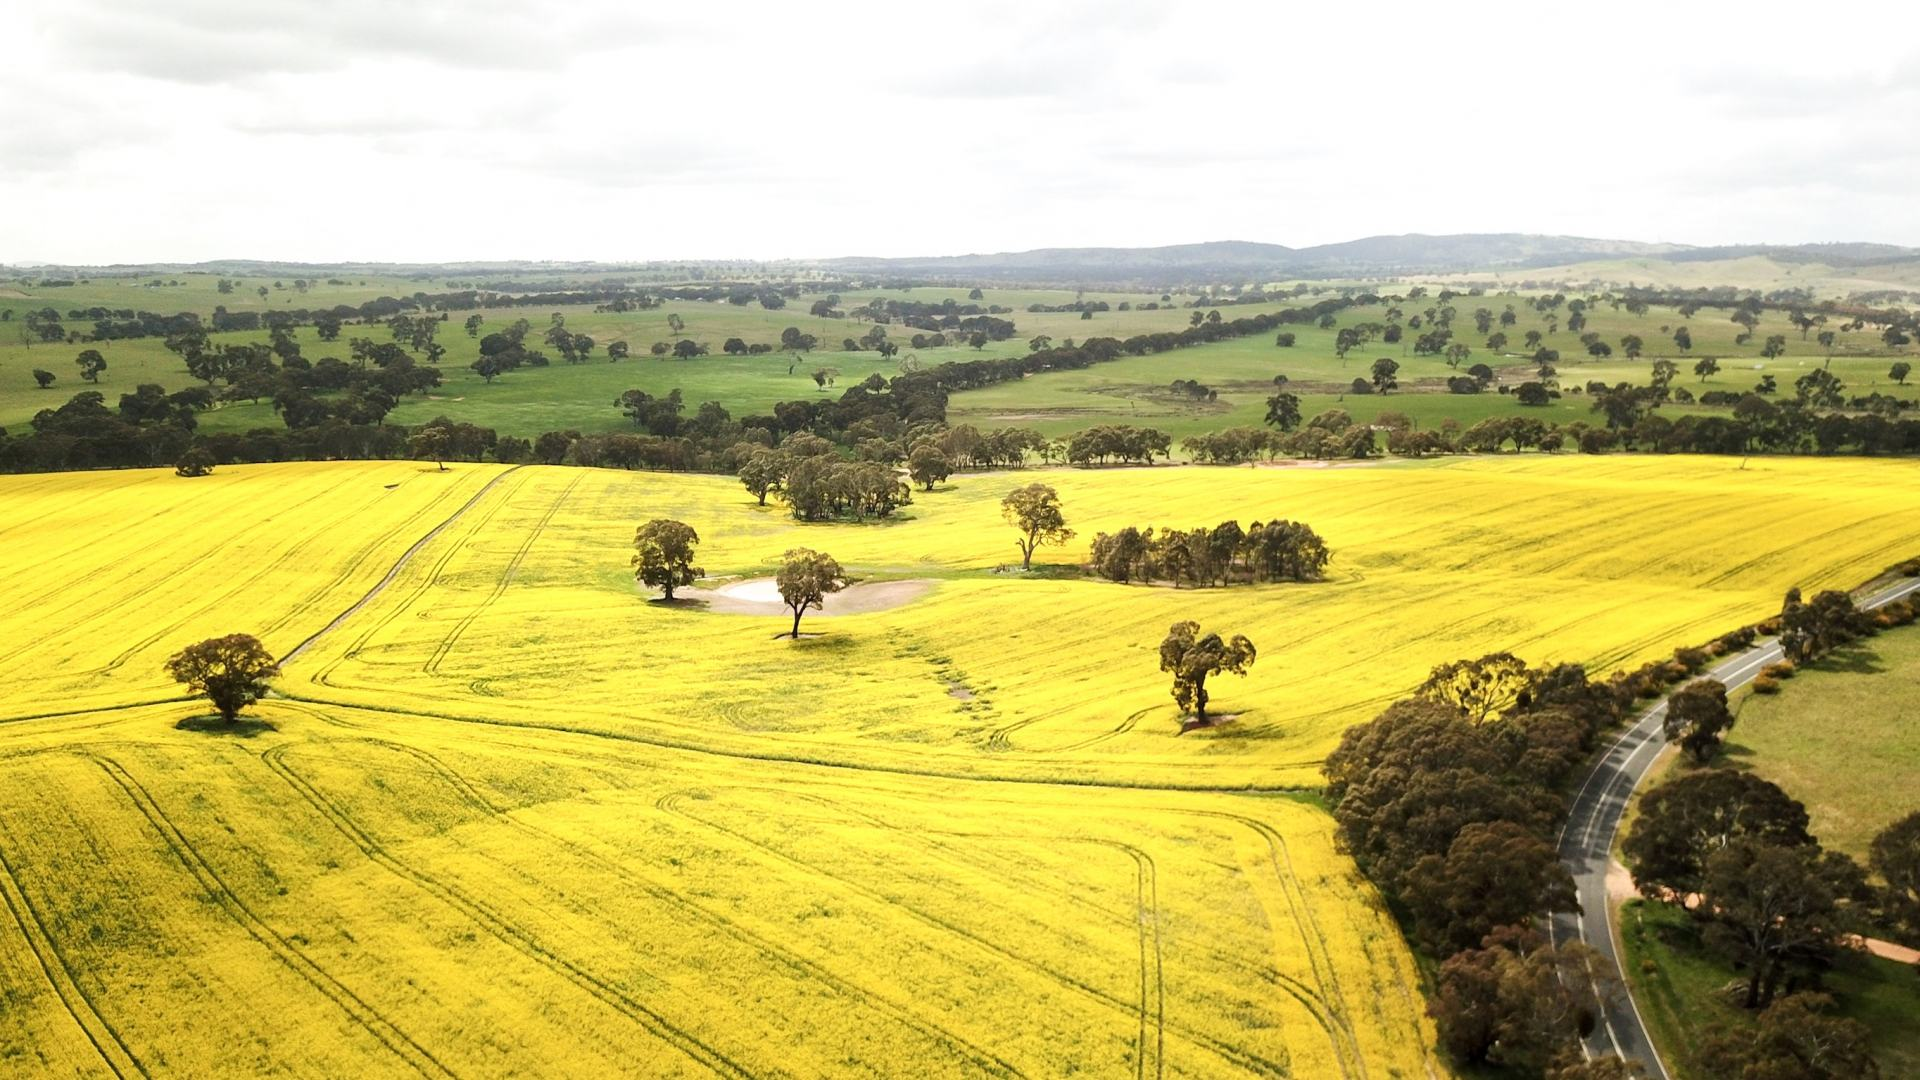 canola fields on the way to the grampians